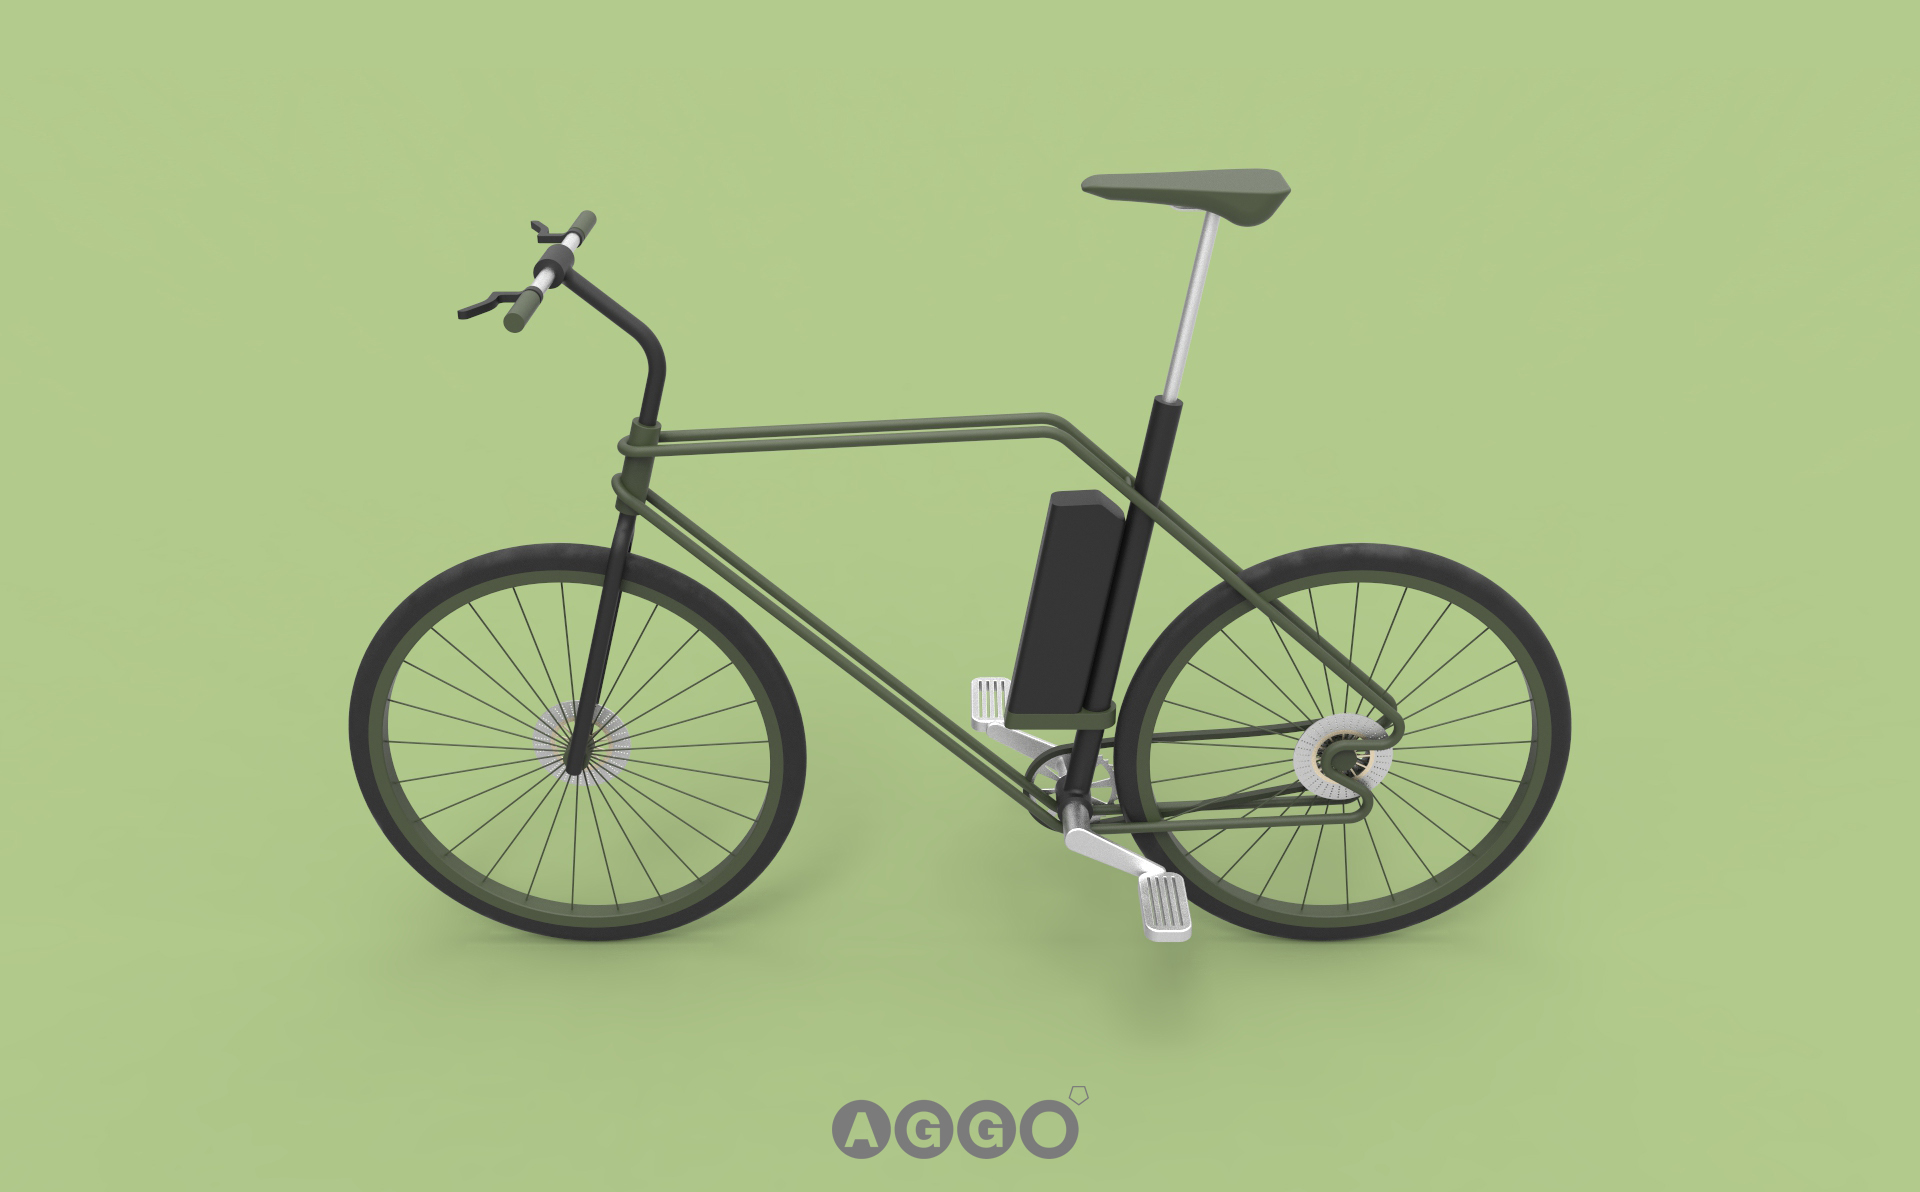 Electric_Bicycle_by_Aggo_002.jpg